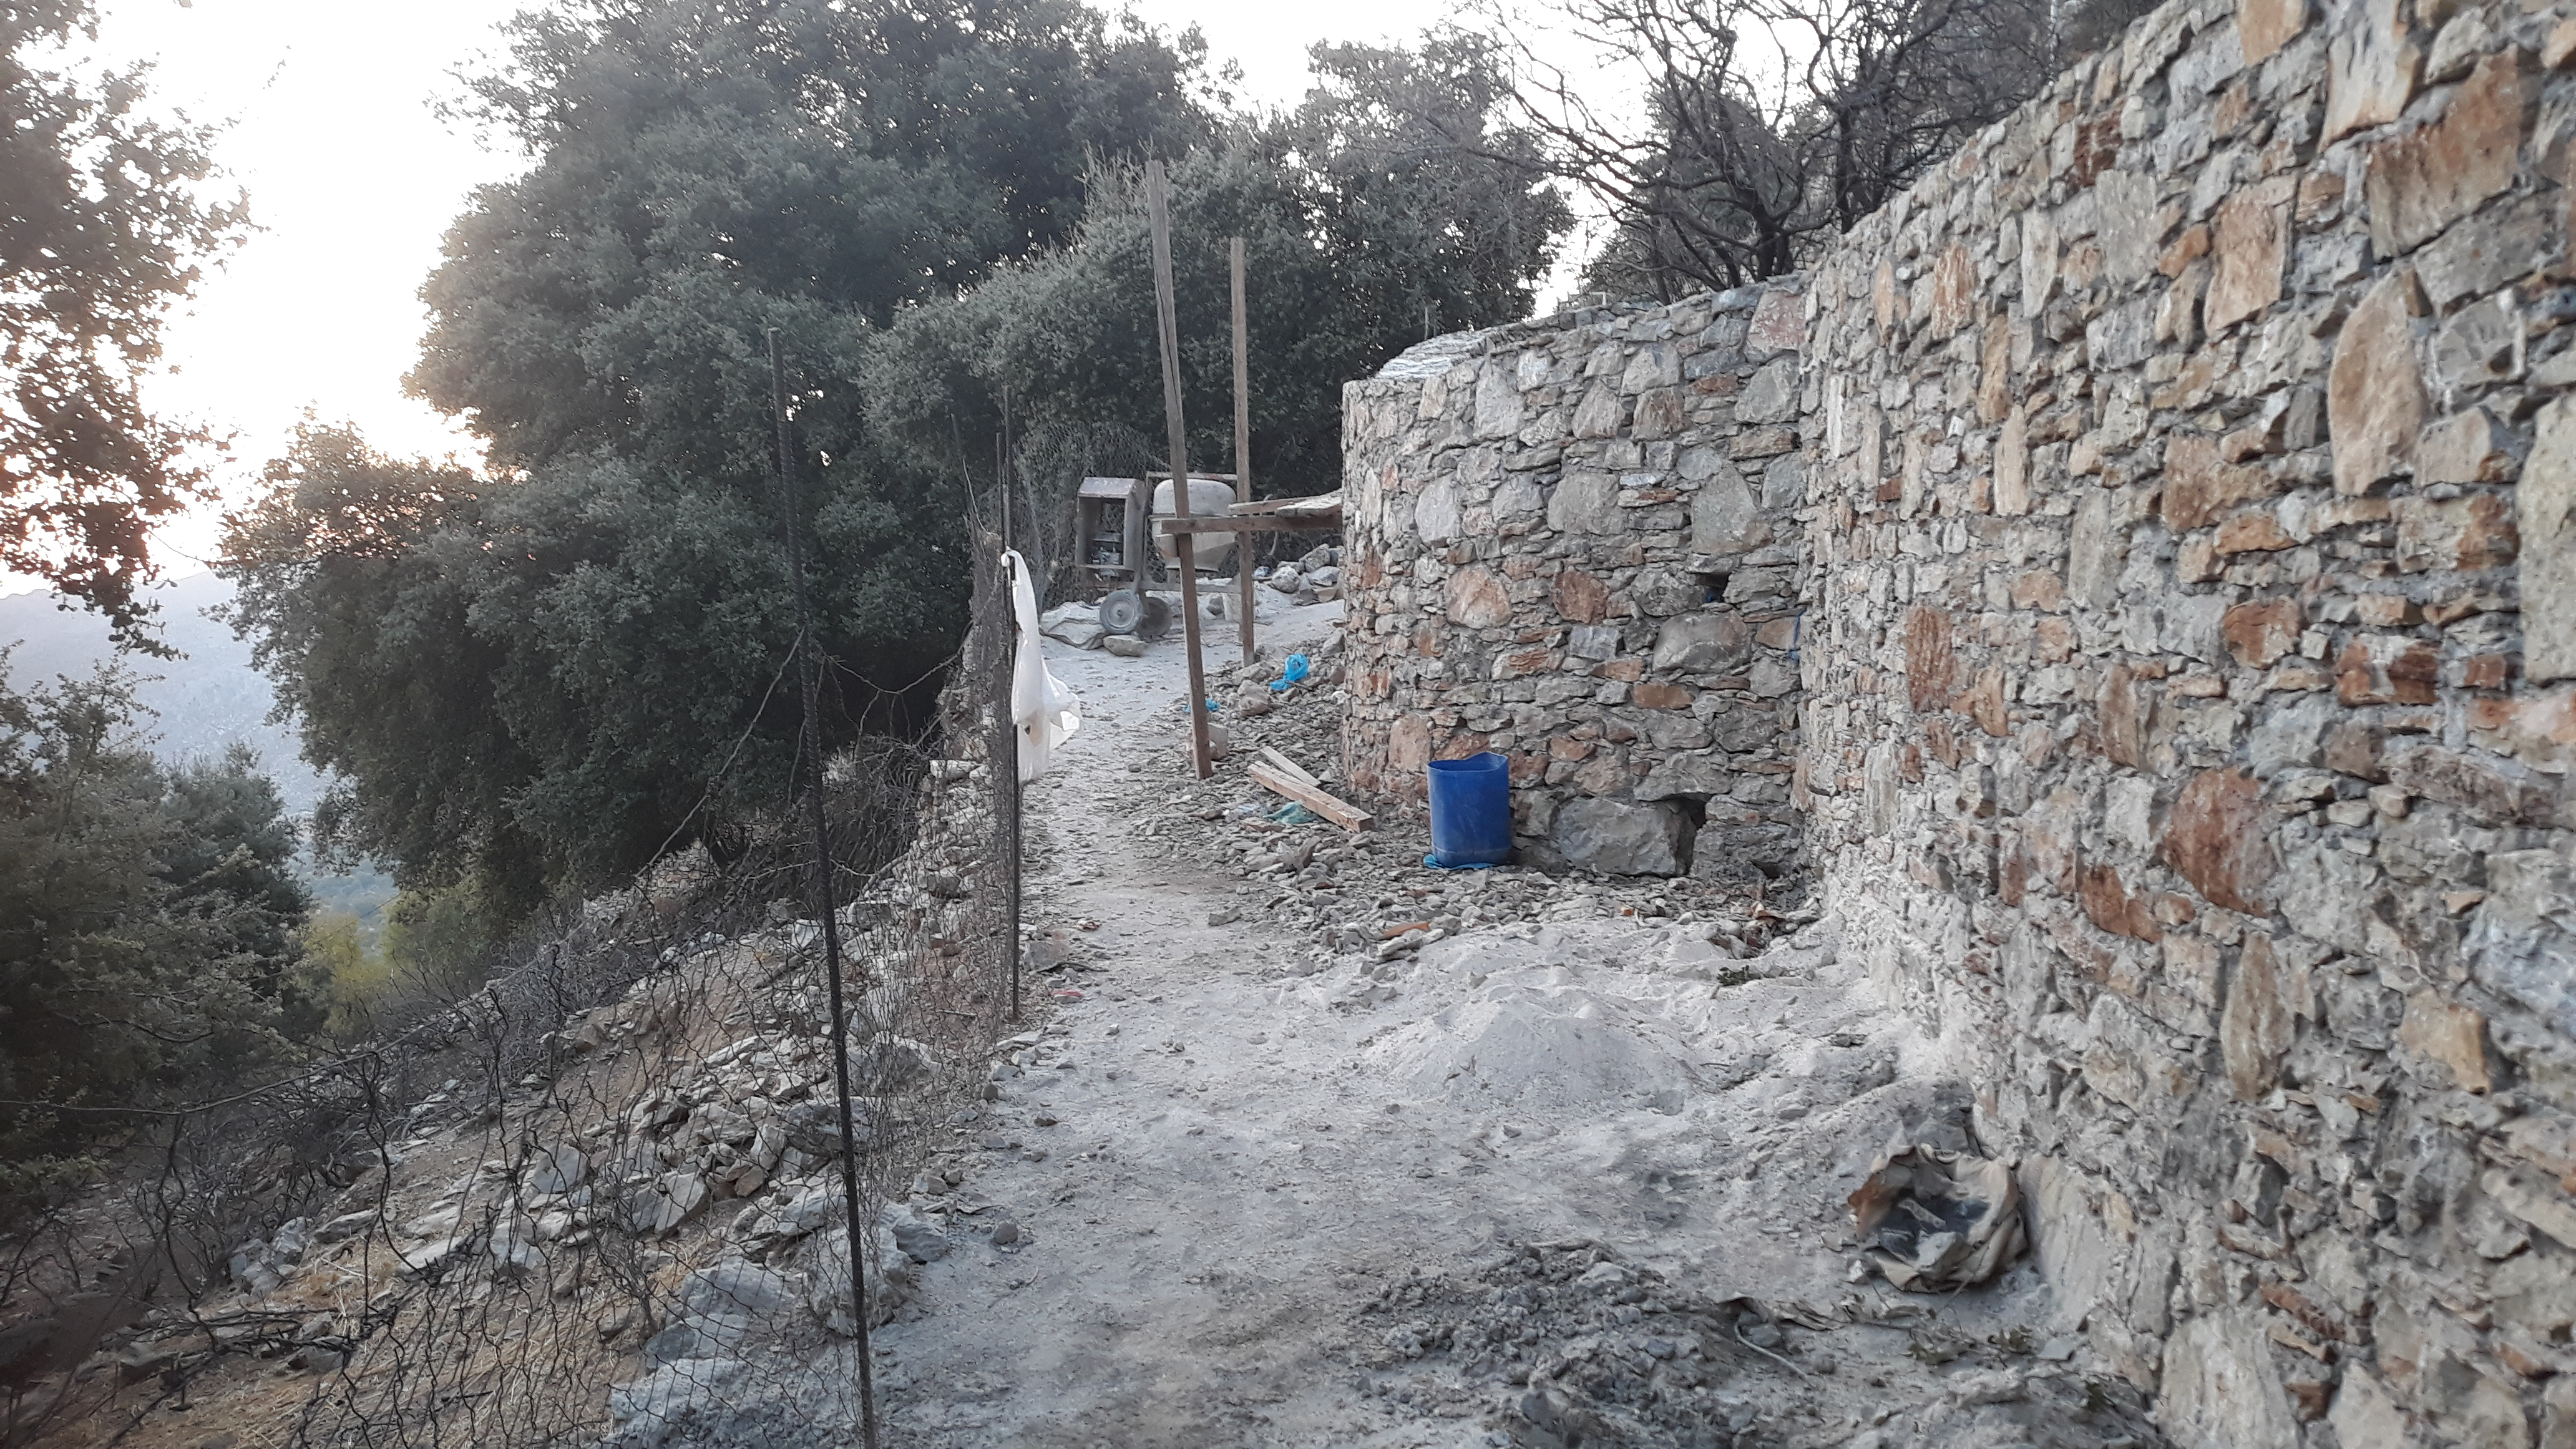 There are a lot of new walls being built at the top of the village, on the road, and here, along the lower path at Ag Trianda.